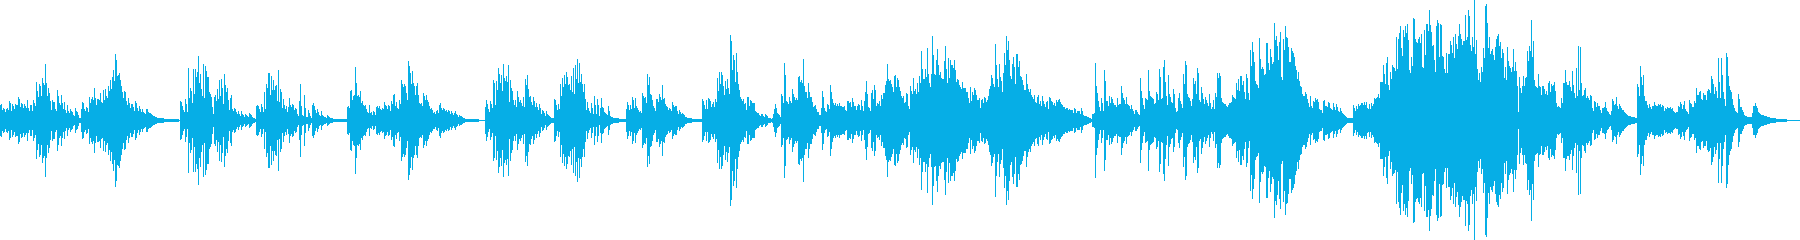 Irreparable mistake (piano solo song)'s reproduced waveform